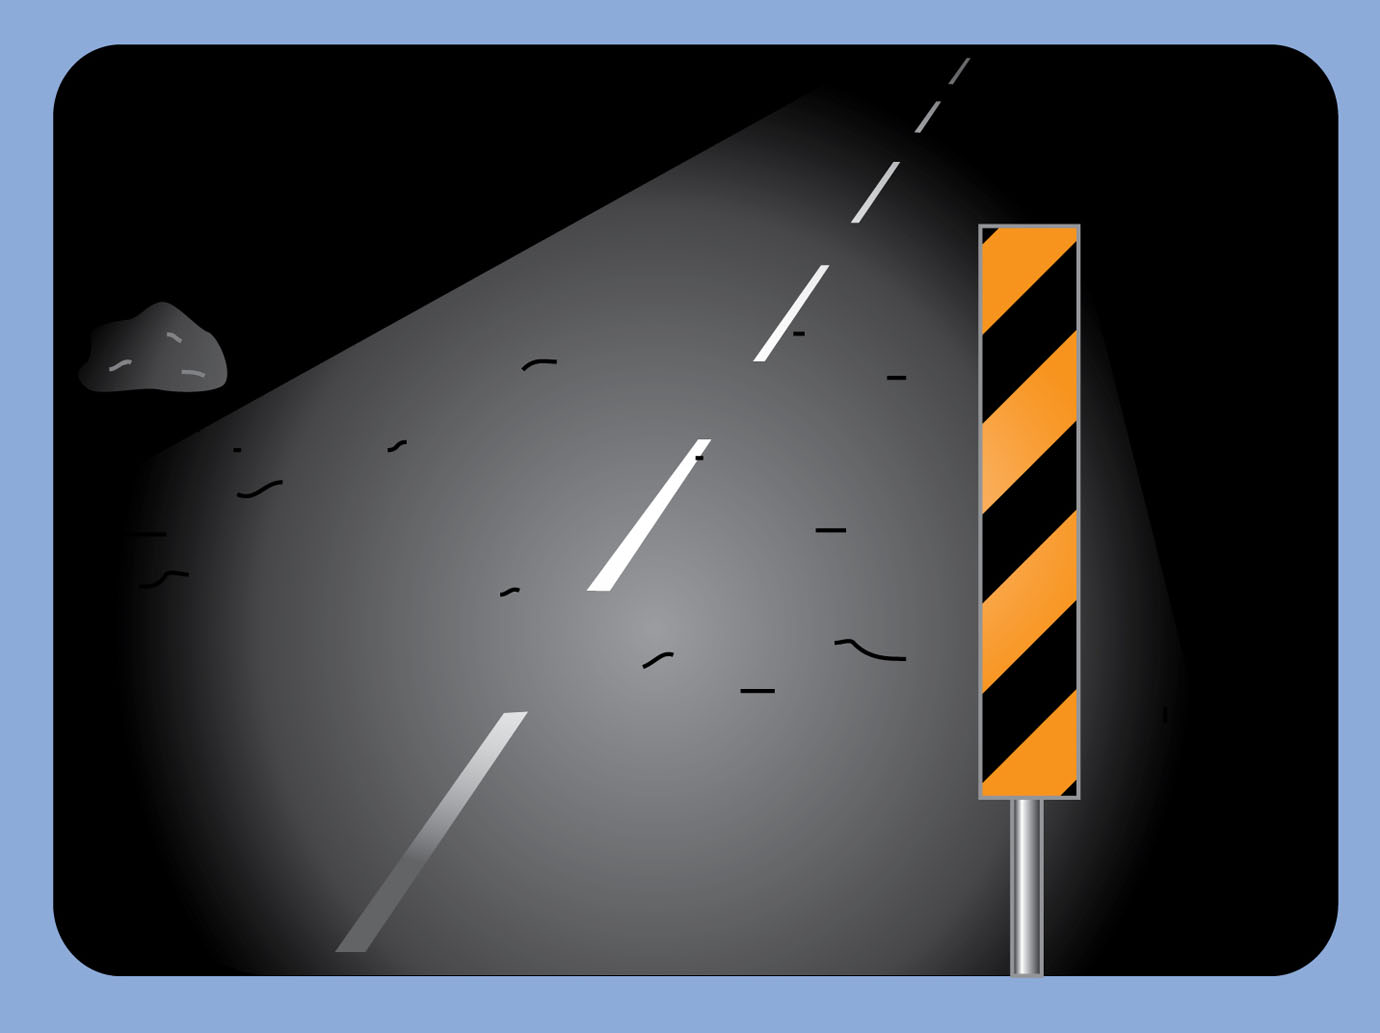 Road sign etiquette international business protocol and social a stop biocorpaavc Gallery